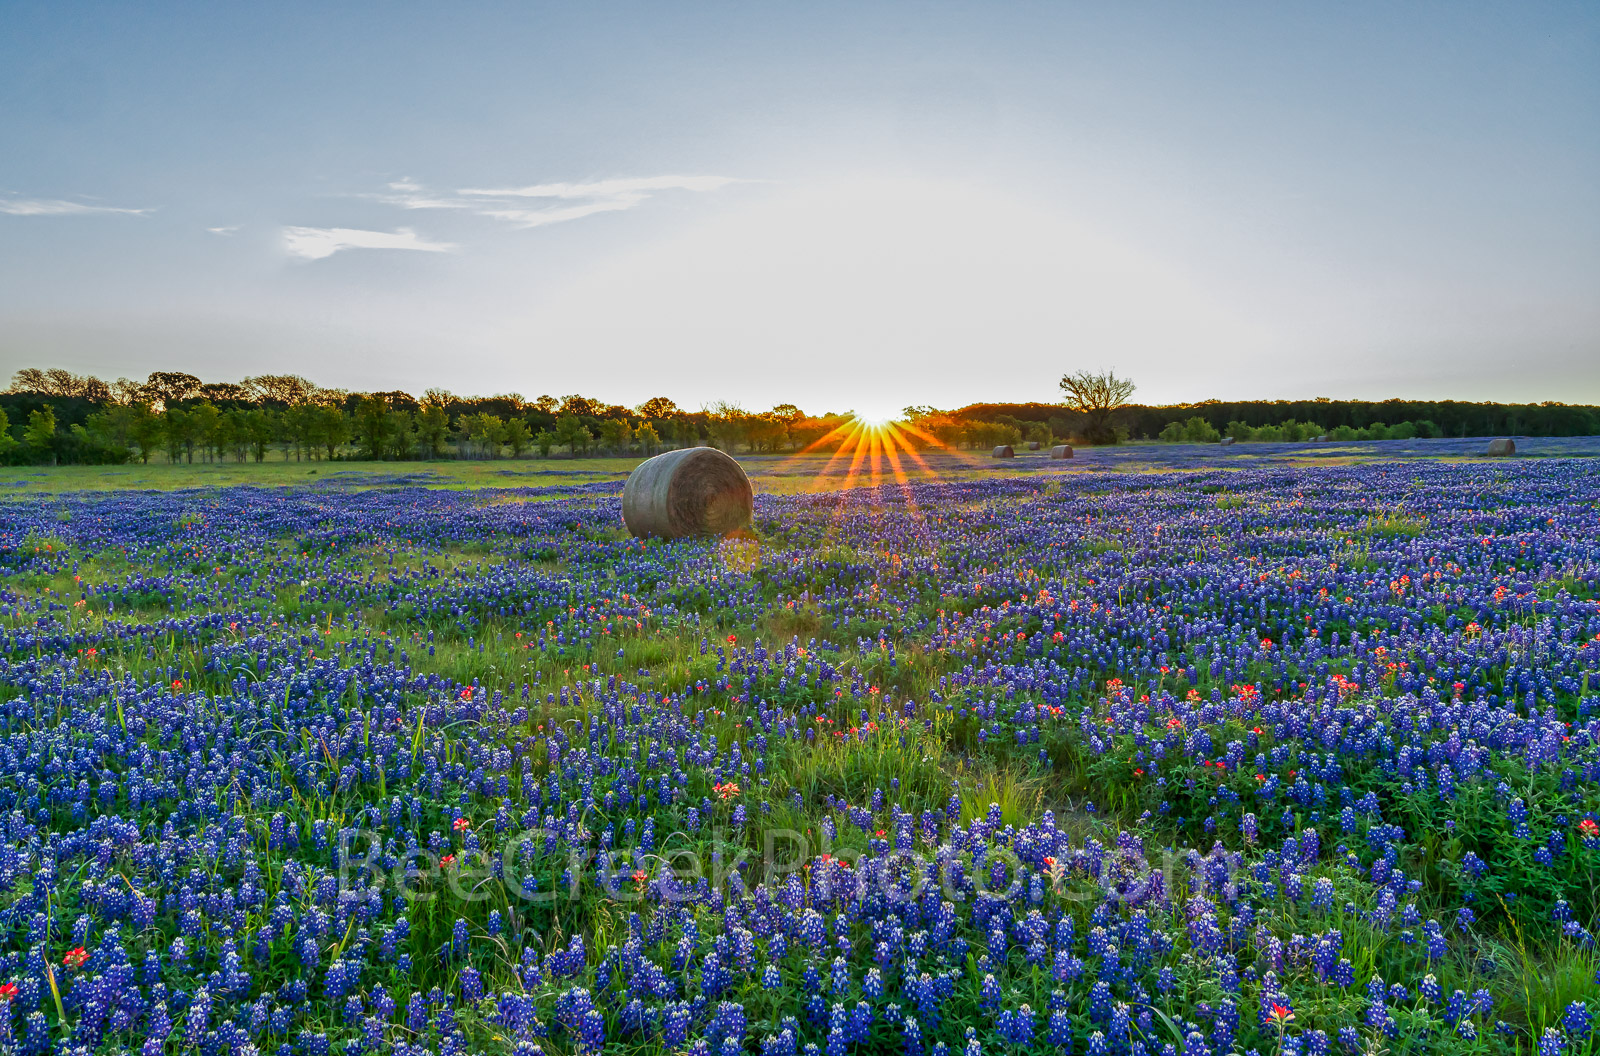 Texas bluebonnets, haybales, sunrise, texas bluebonnet wildflowers, farm, field, rays, sun, indian paintbrush, pop of red, light, rural texas, hay,